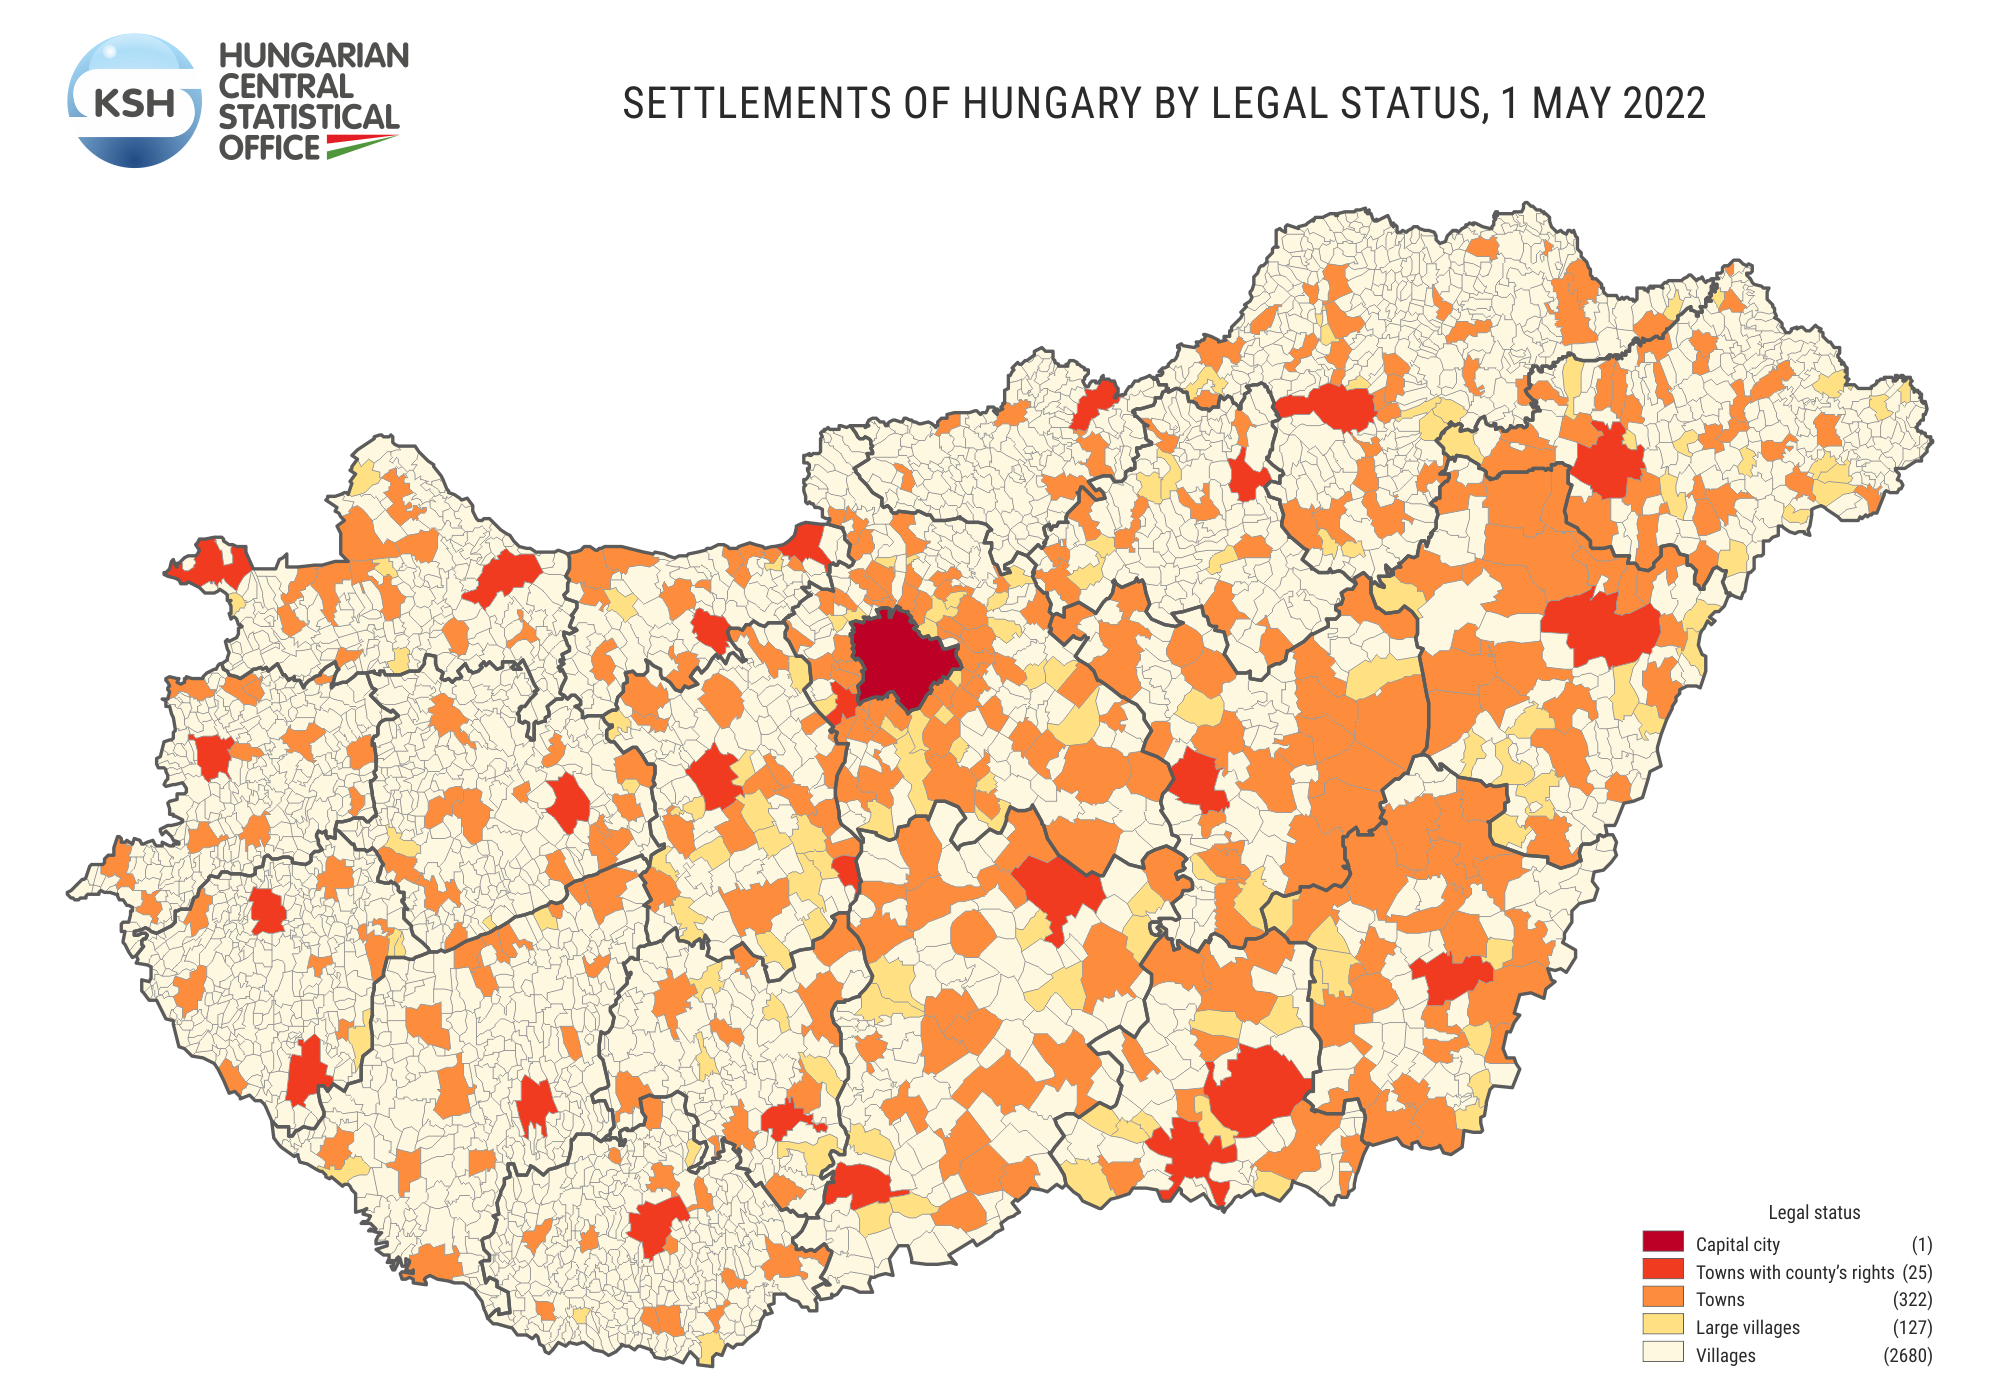 Settlements of Hungary